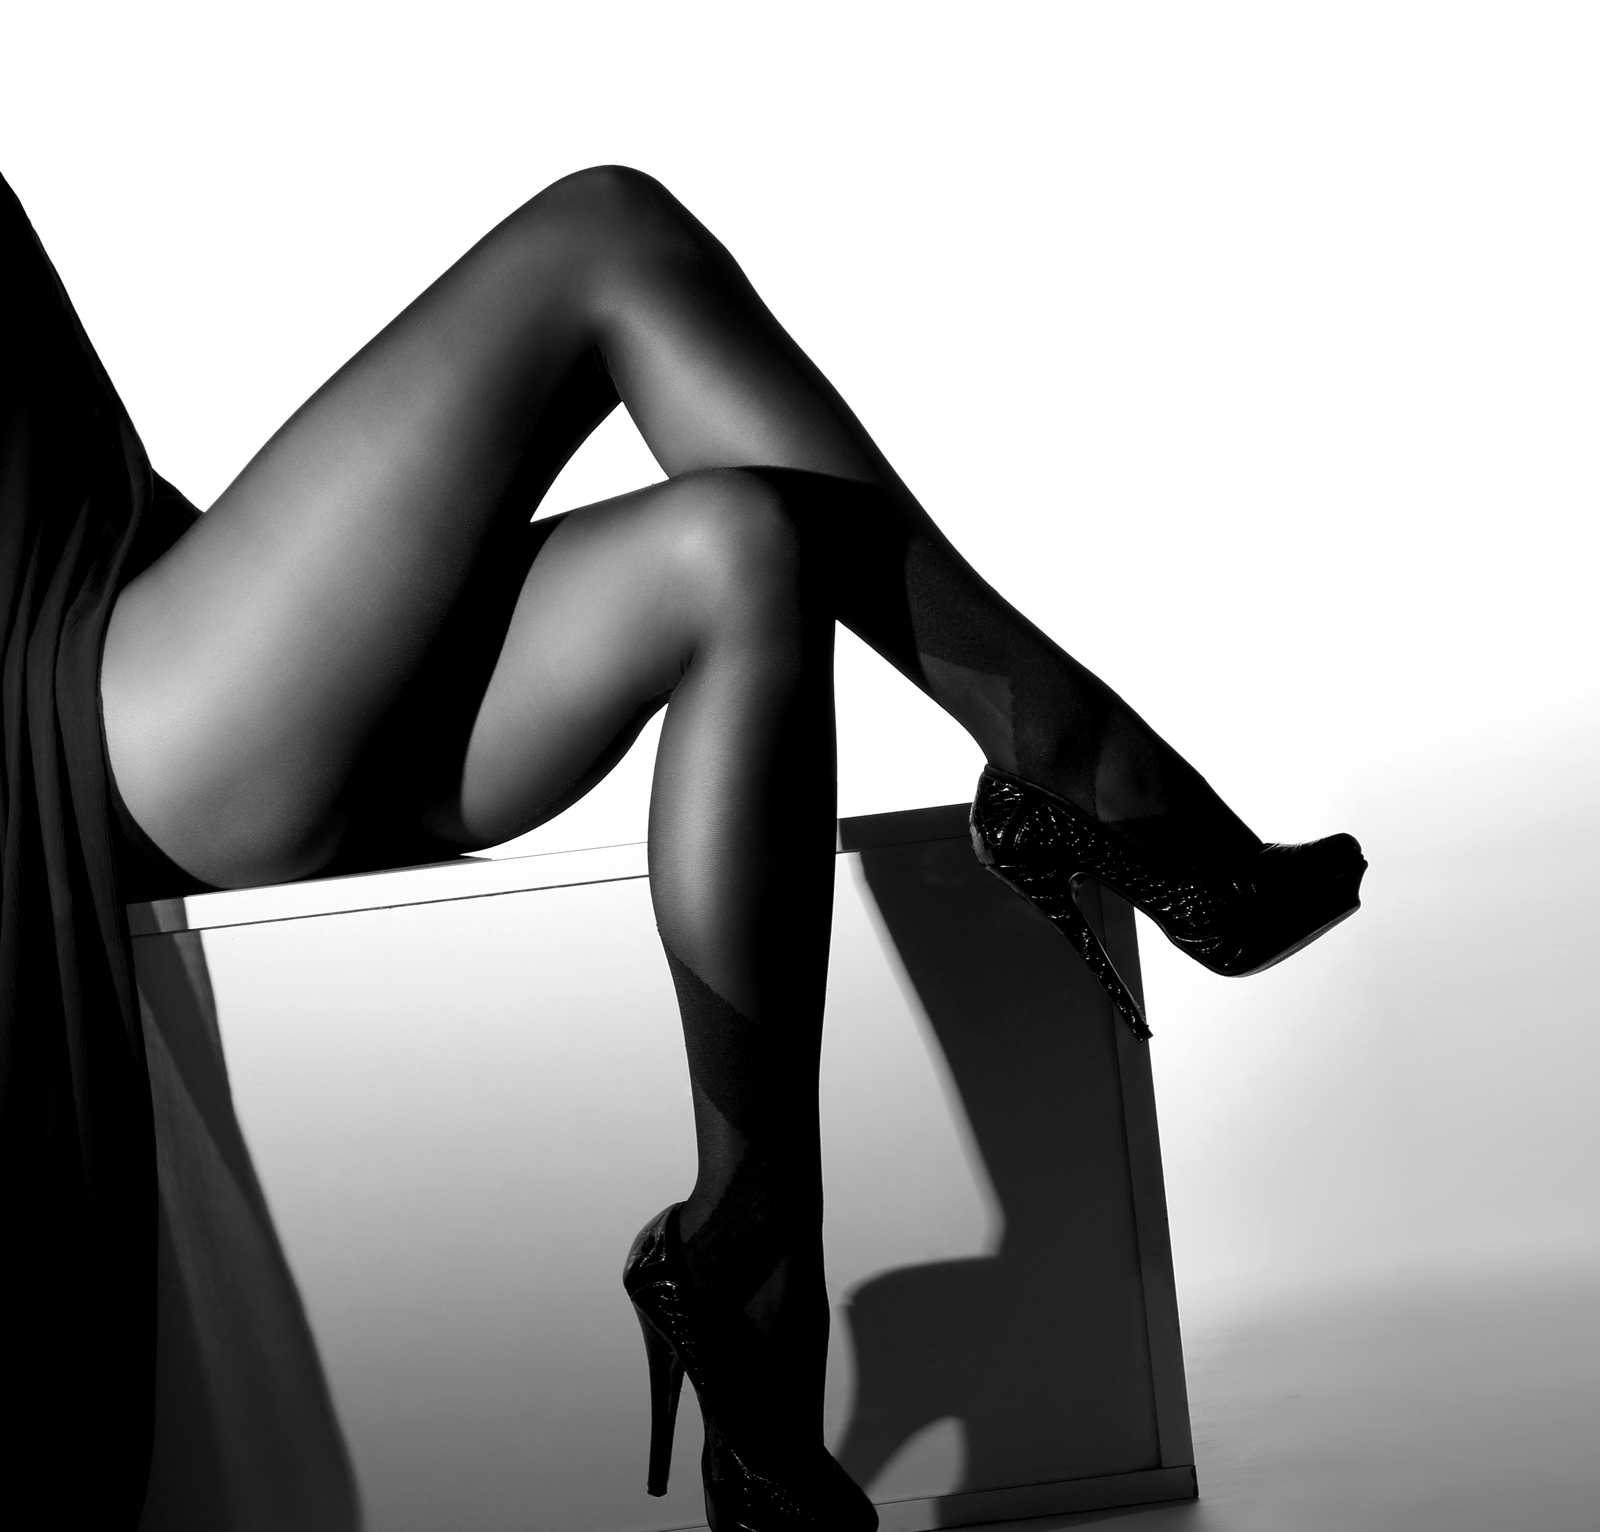 black-and-white-photo-of-legs-with-heels.jpg